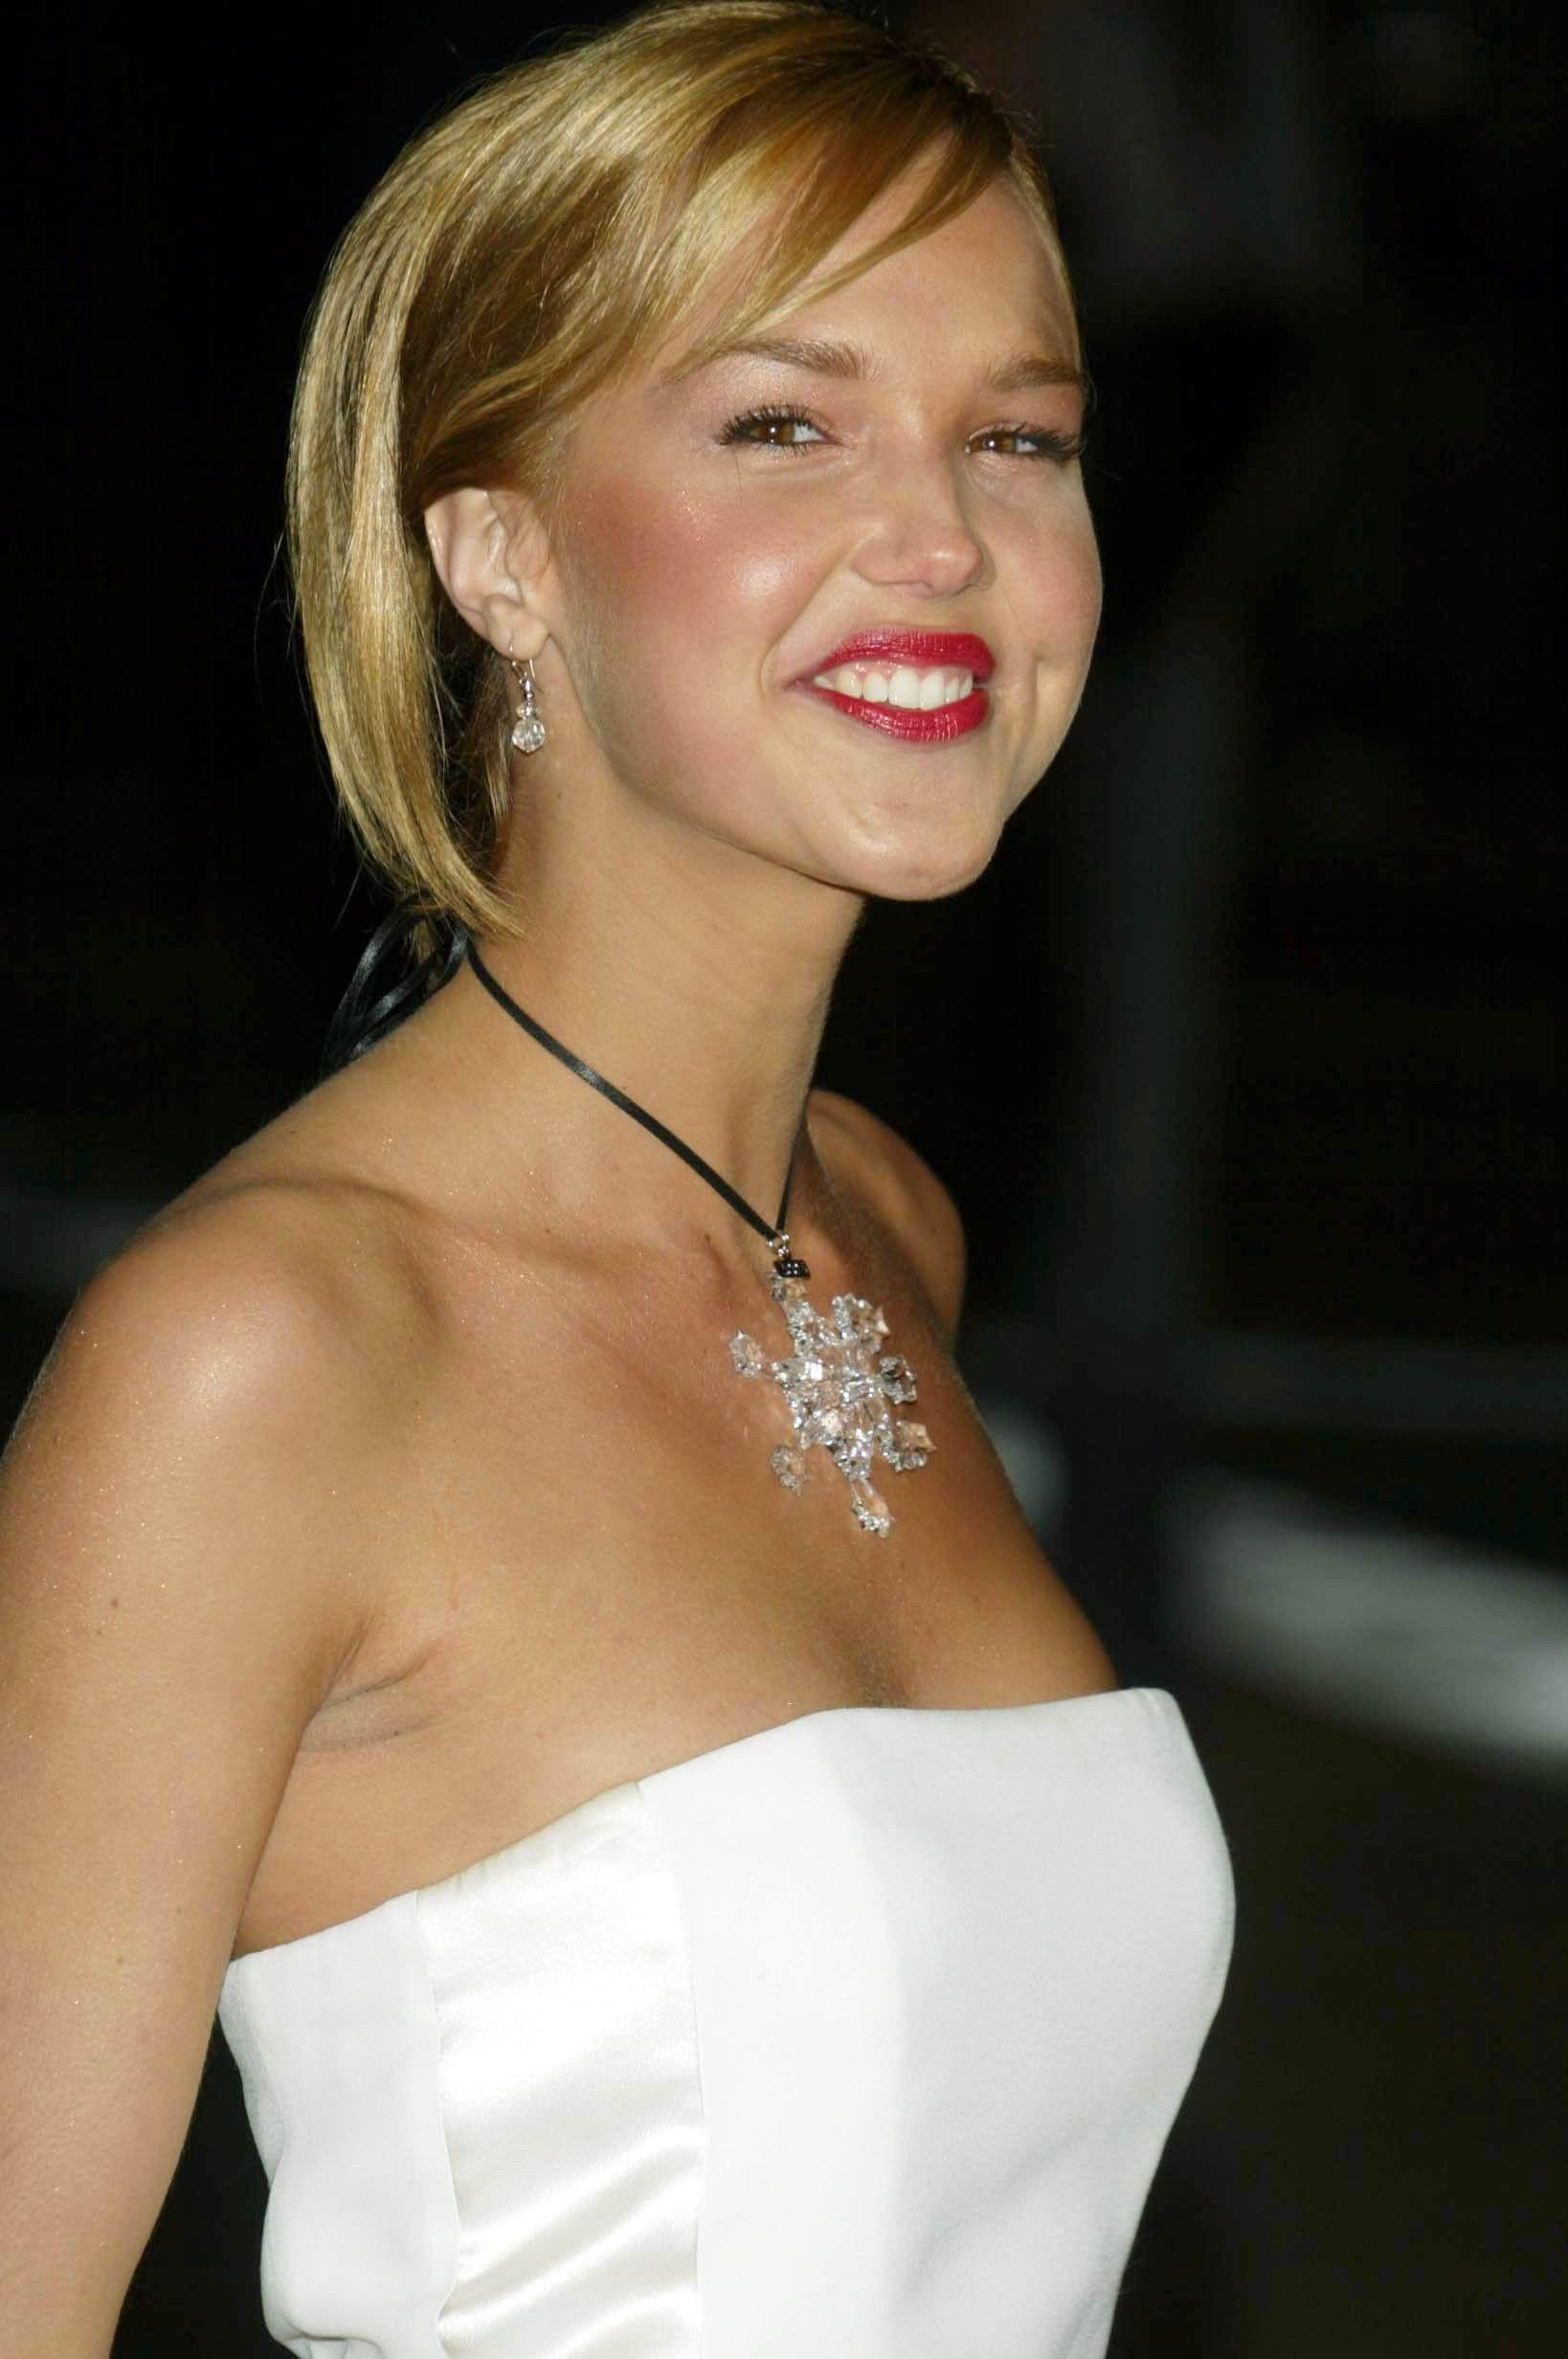 Arielle Kebbel - Page 5 pictures, naked, oops, topless ...